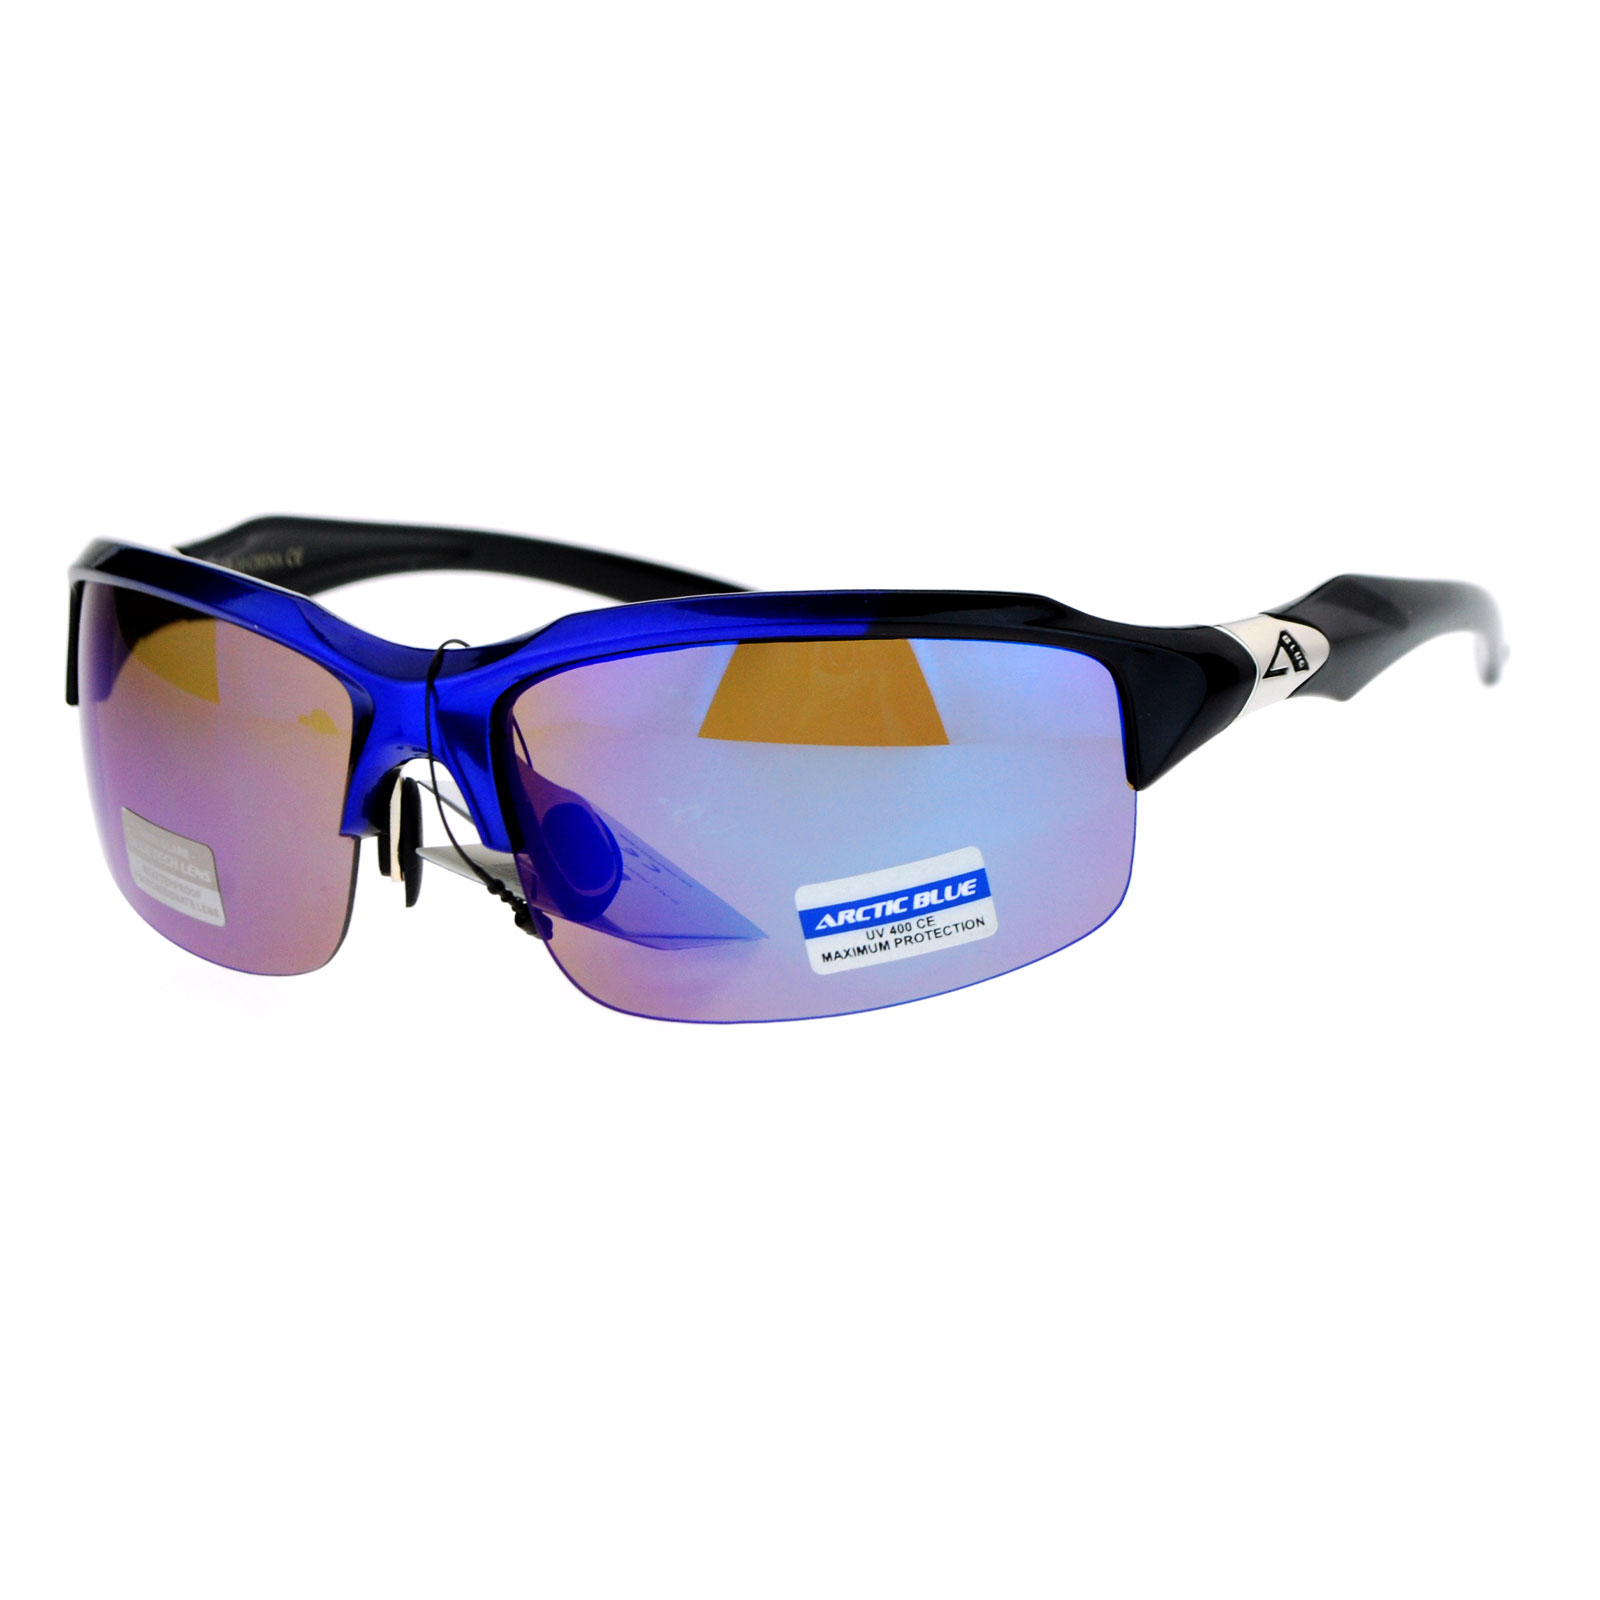 Sunglasses With Mirrored Lenses  arctic blue bluetech mirrored lens baseball half rim sport